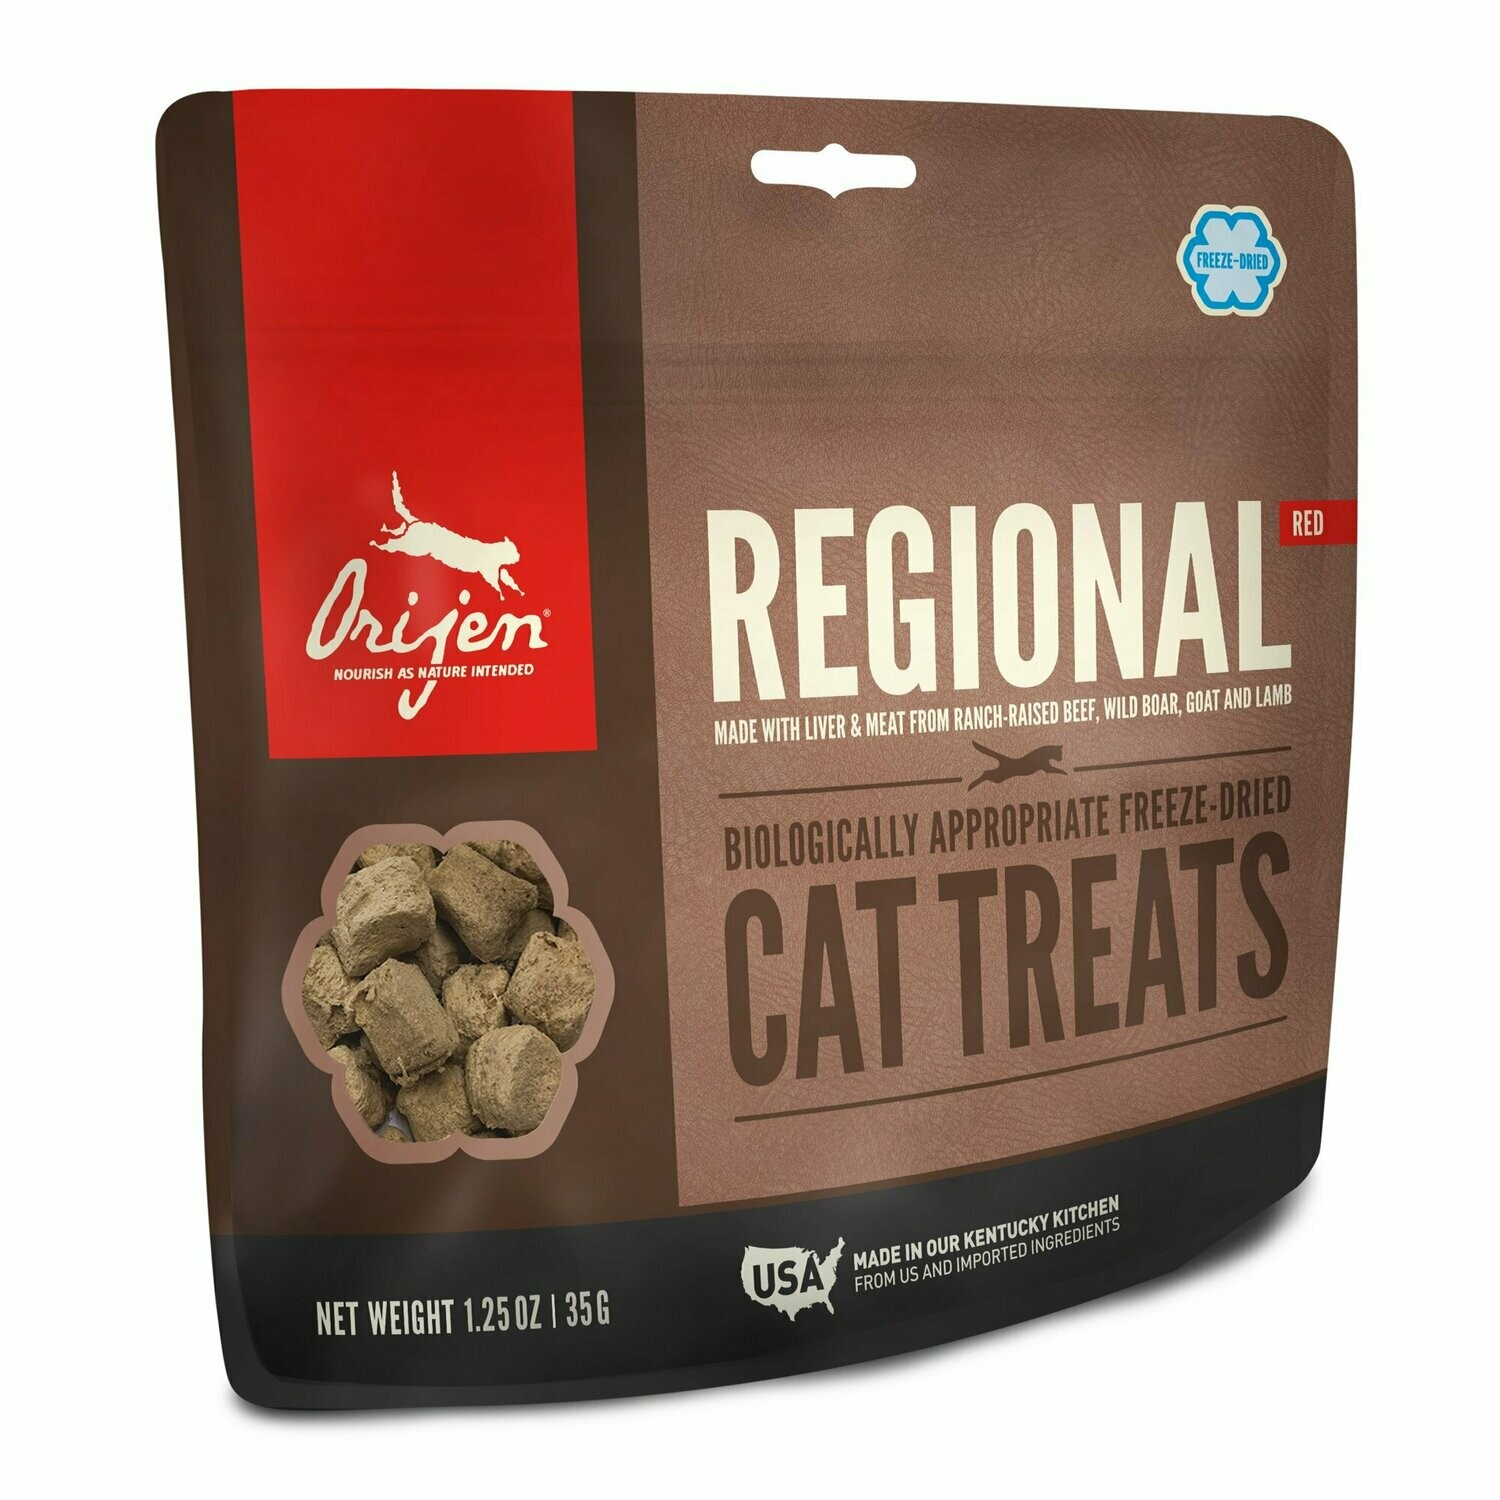 **BOGO** Orijen Freeze-Dried Regional Red Beef, Boar, Goat & Lamb Cat Treats 1.25 oz